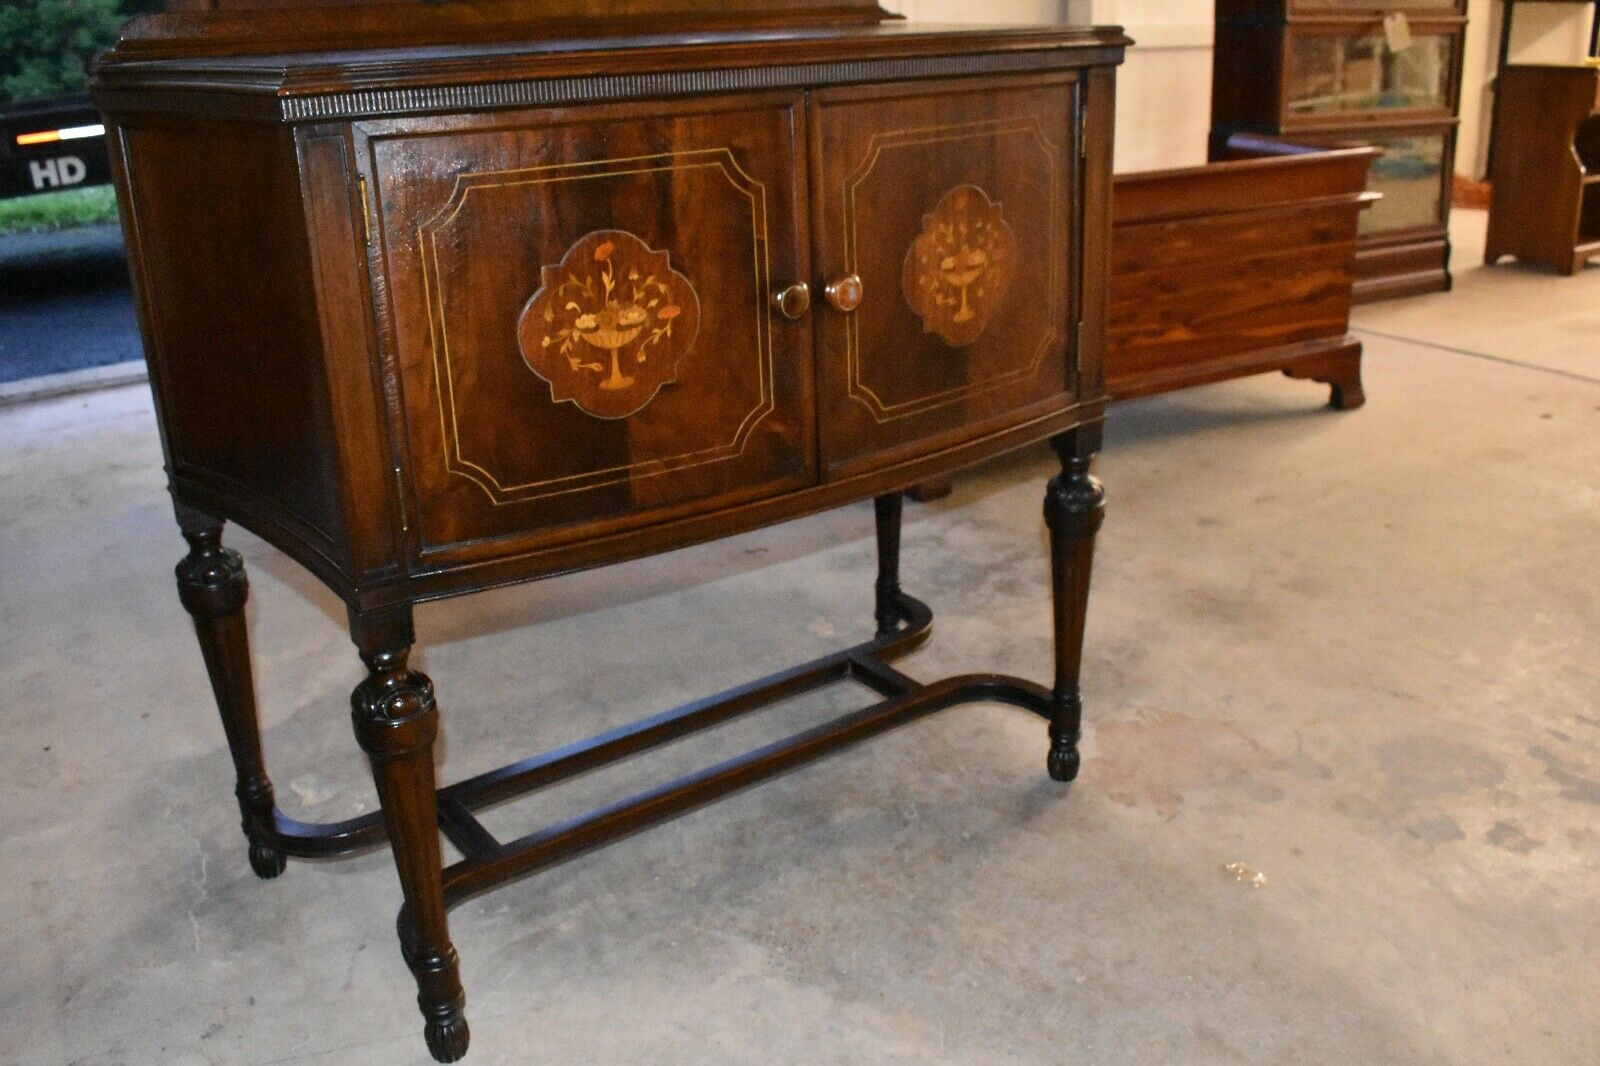 Antique Walnut Cabinet Dining Room Server Buffet Credenza With Decorative Wood I